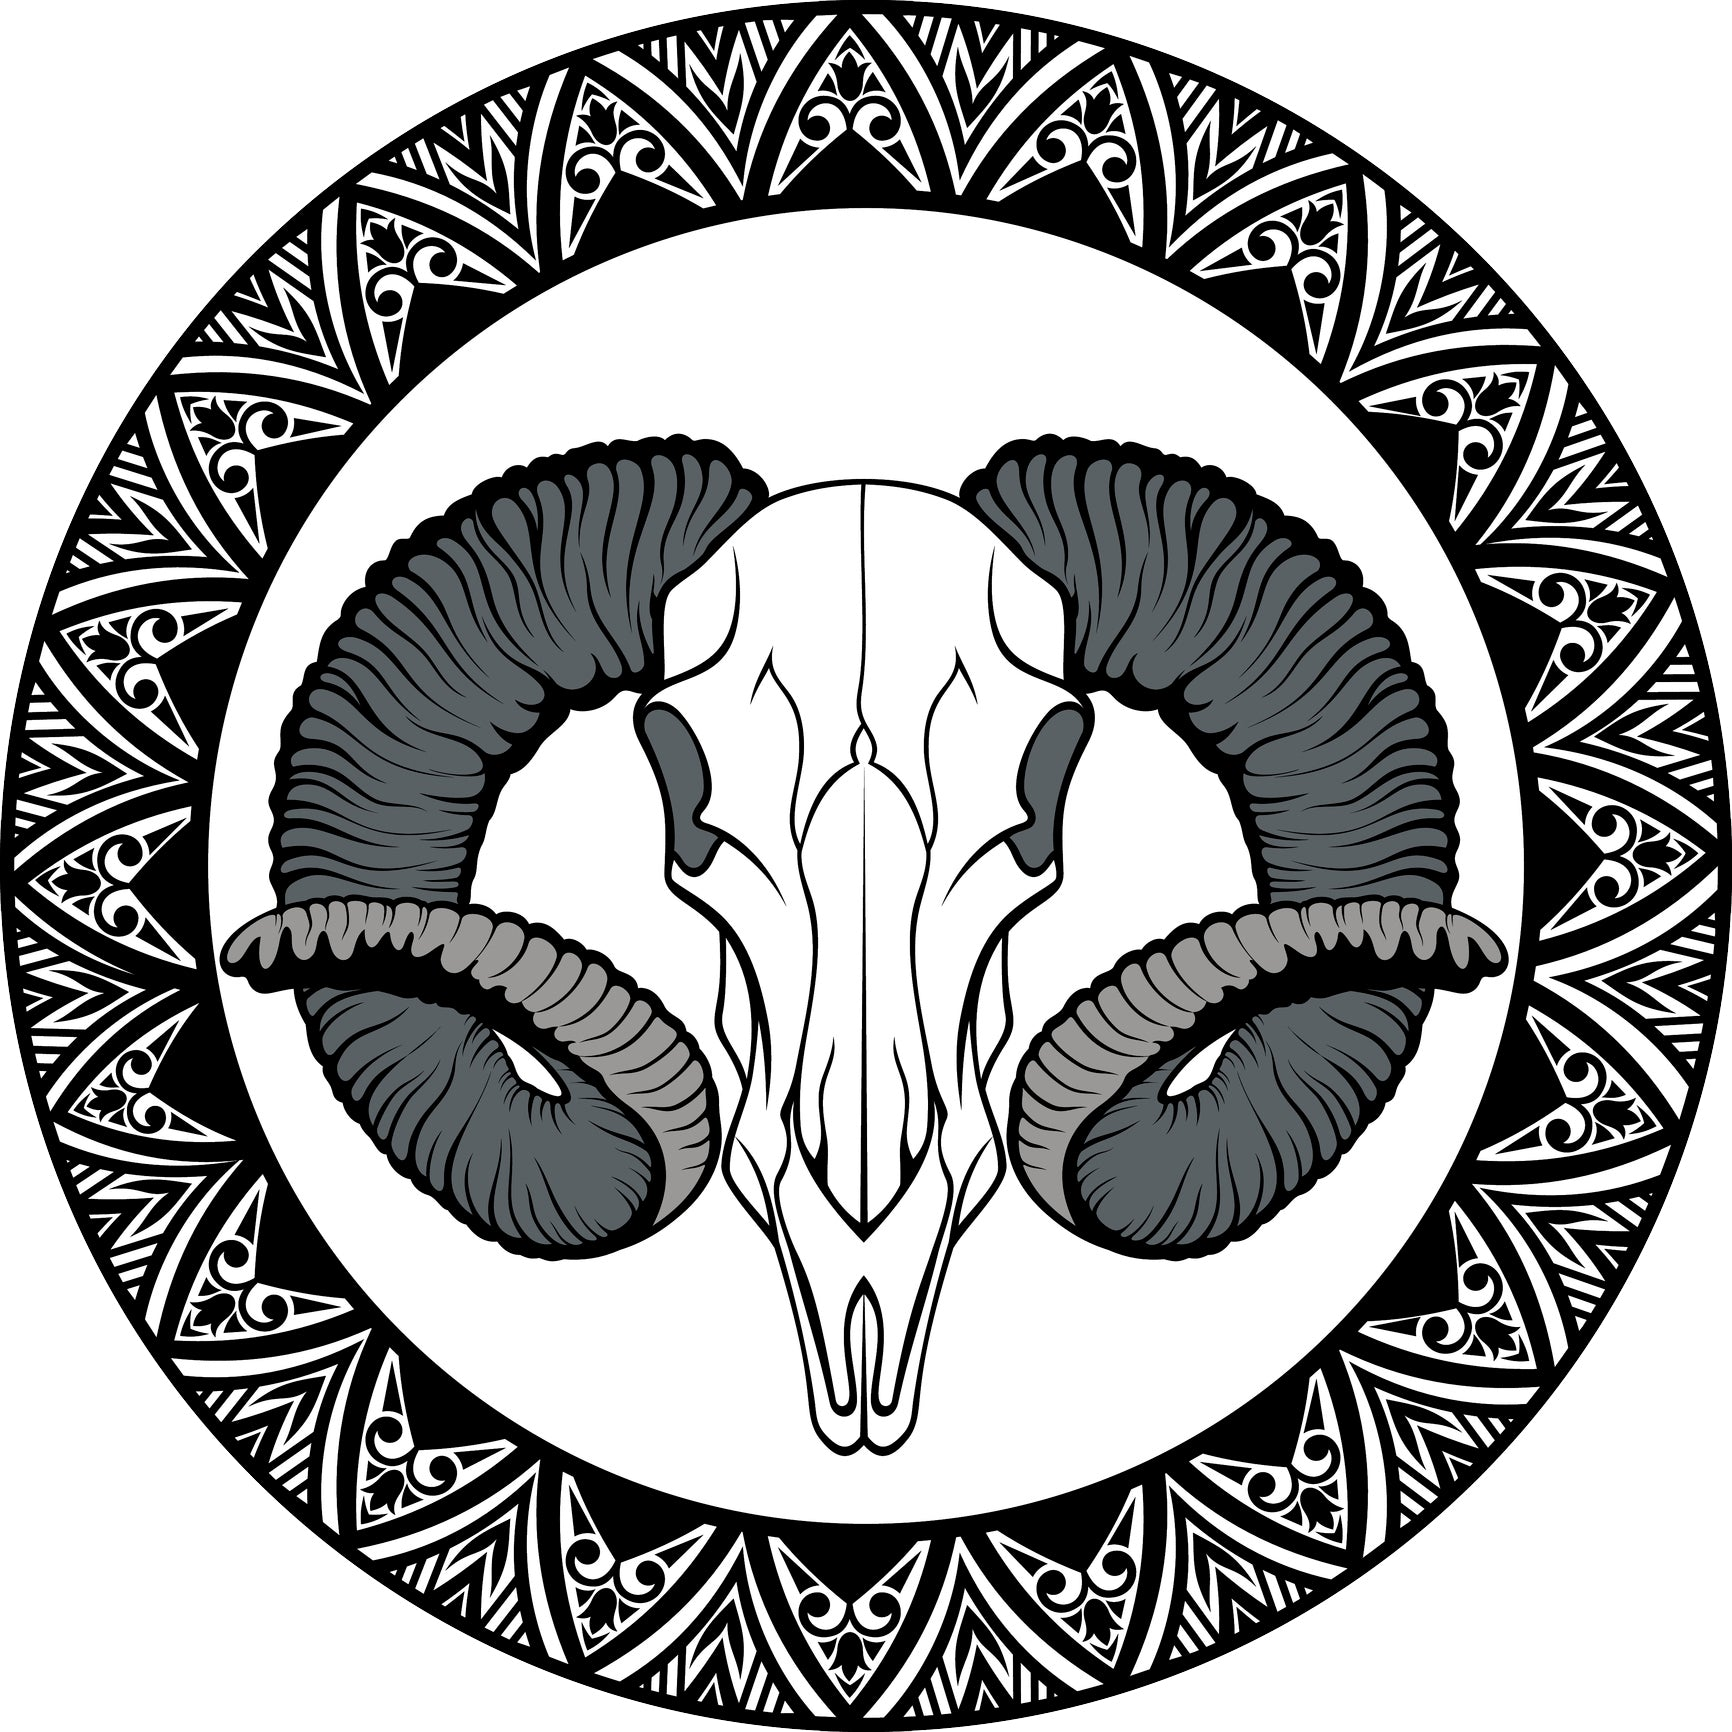 Cool Desert Skull Animal with Tribal Mandala Border Icon Vinyl Sticker